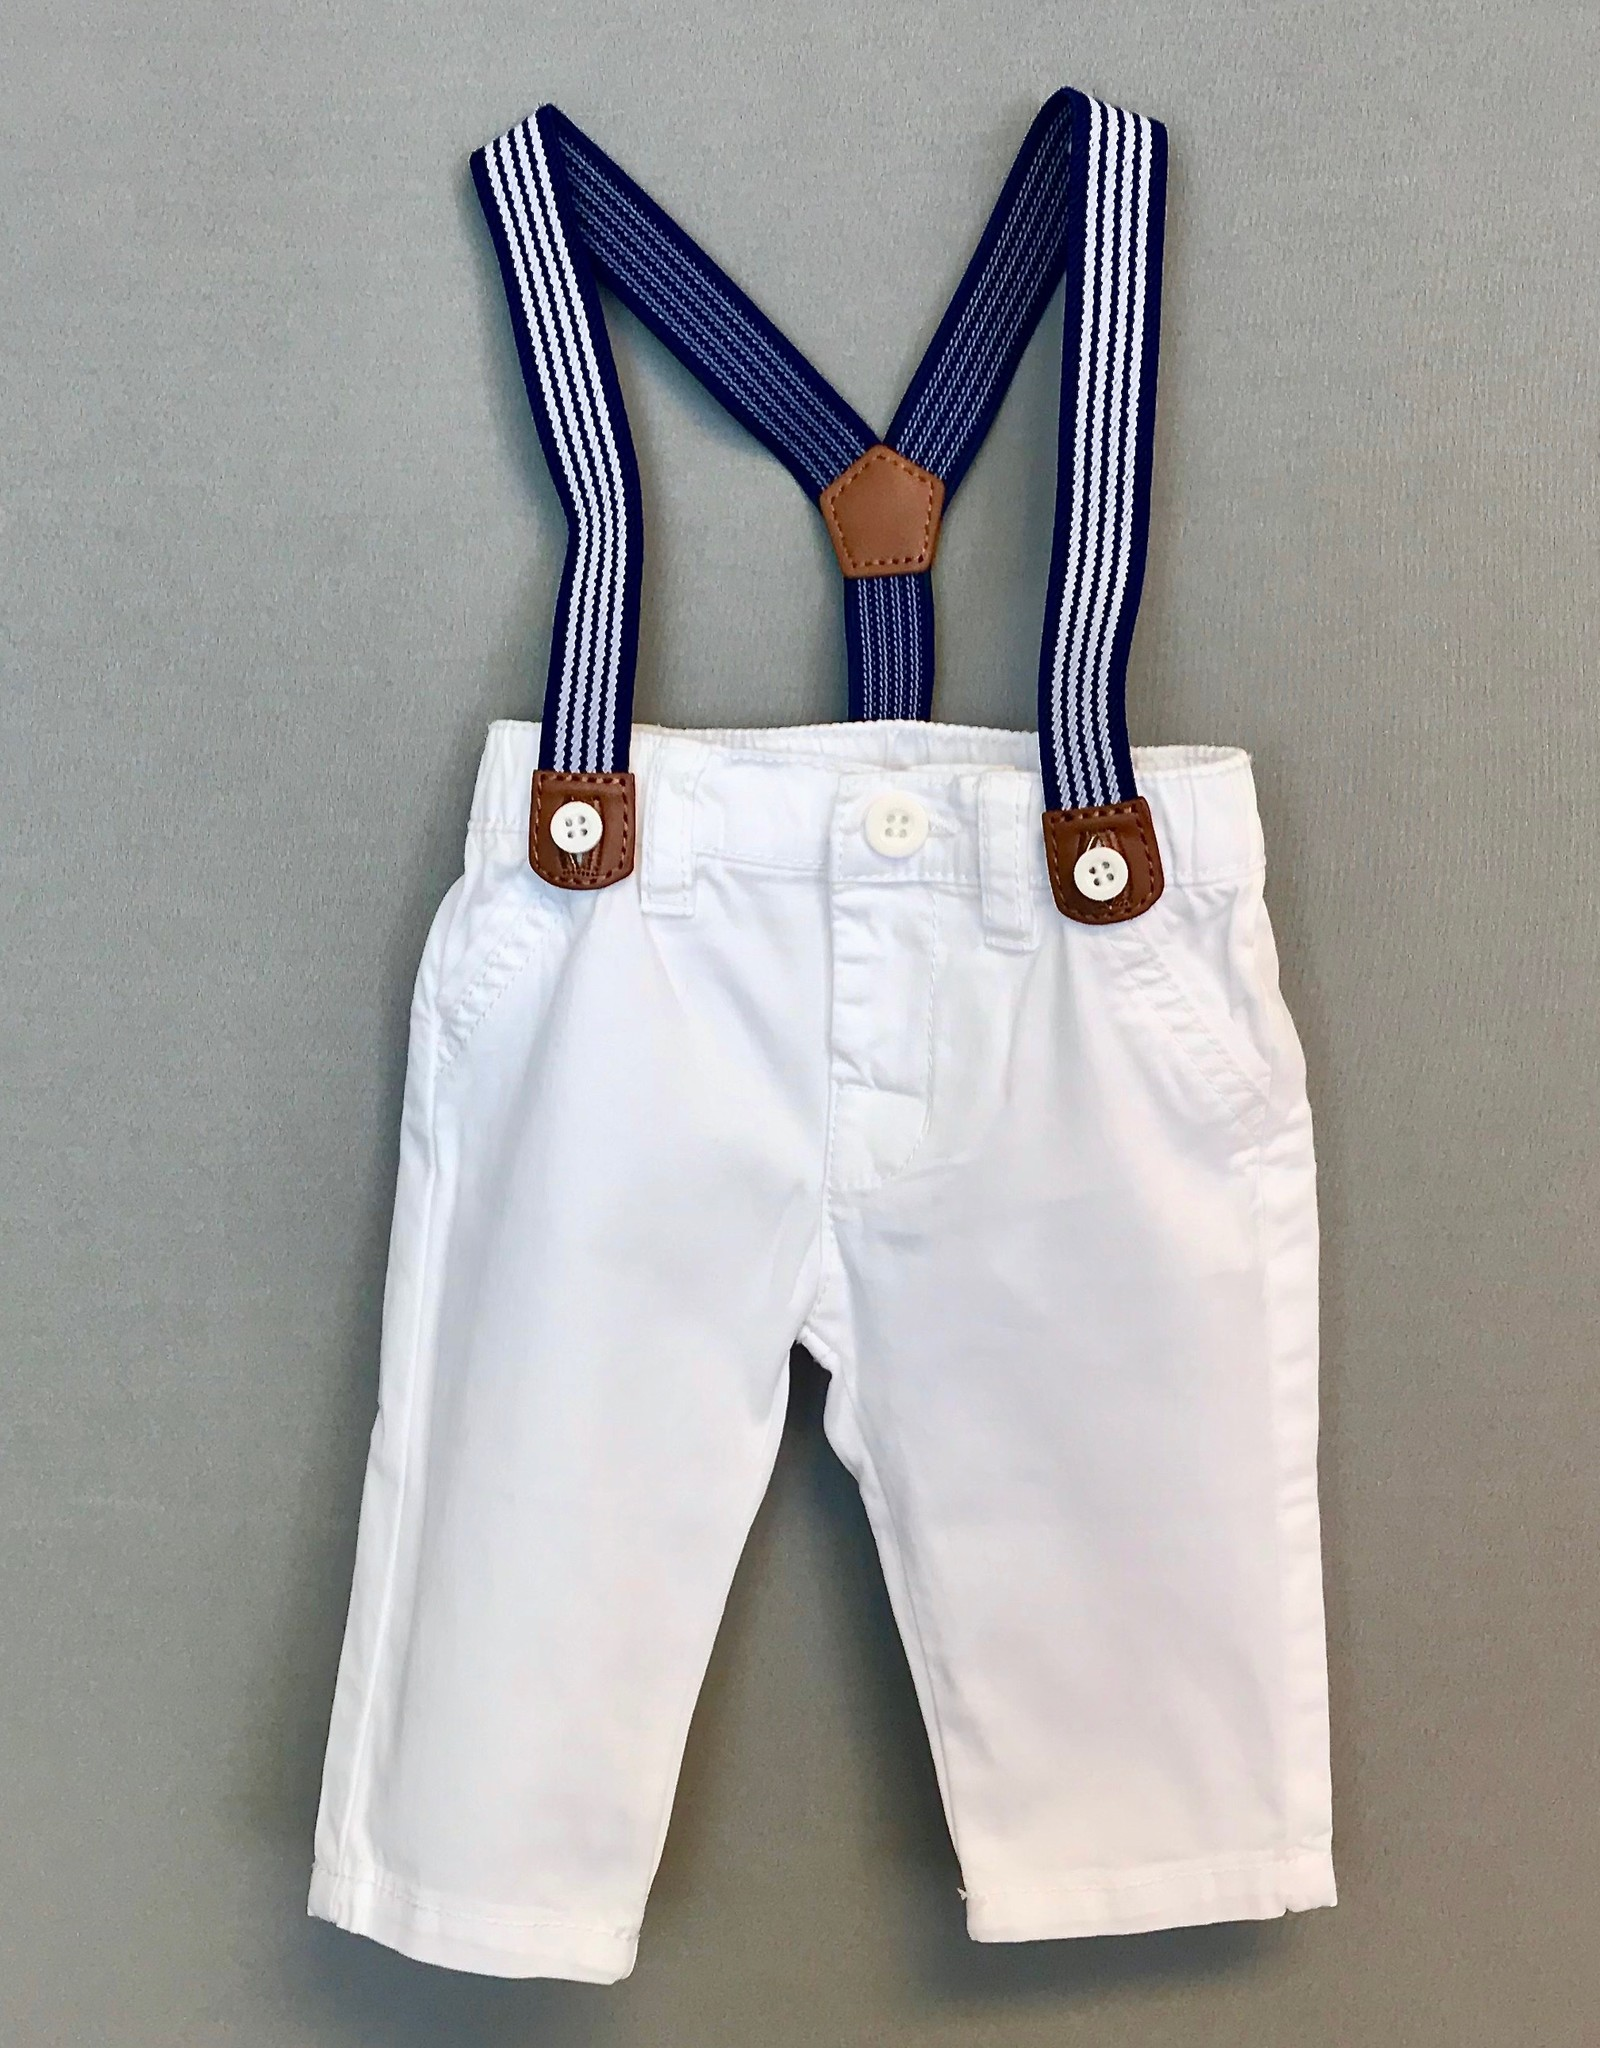 Mayoral Pant white with navy suspenders Mayoral Inf 1542